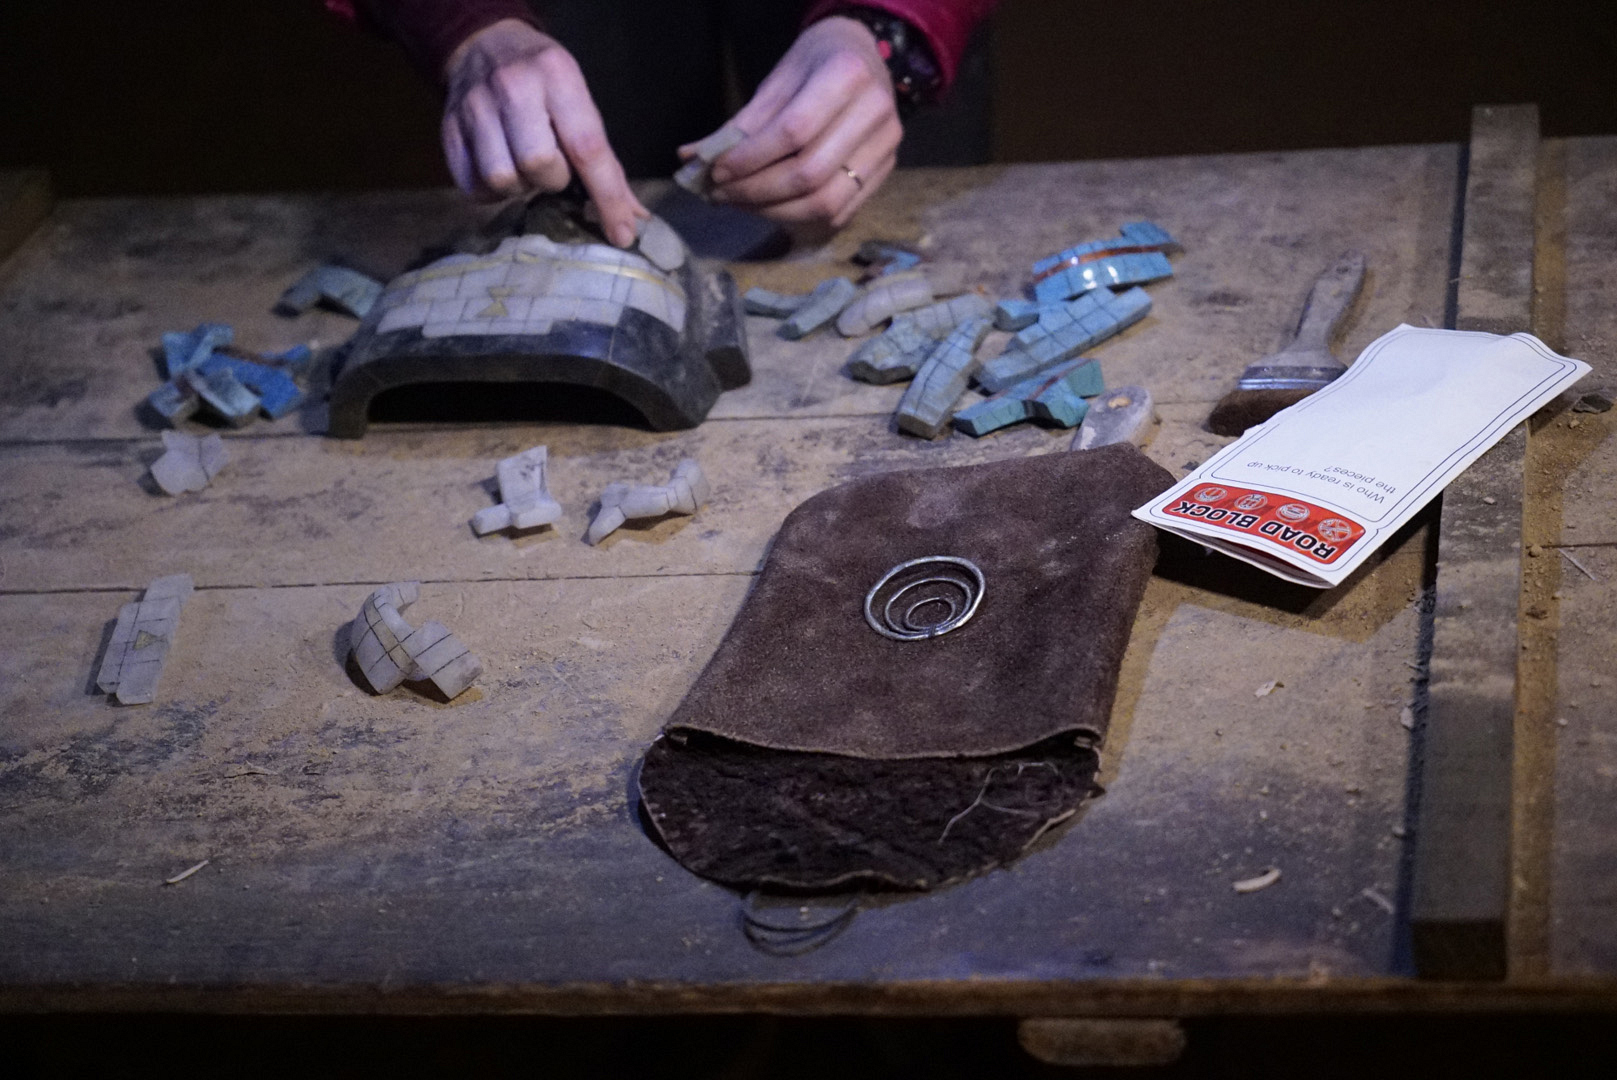 It takes a lot of patience to piece together 13 artifacts into a mask.